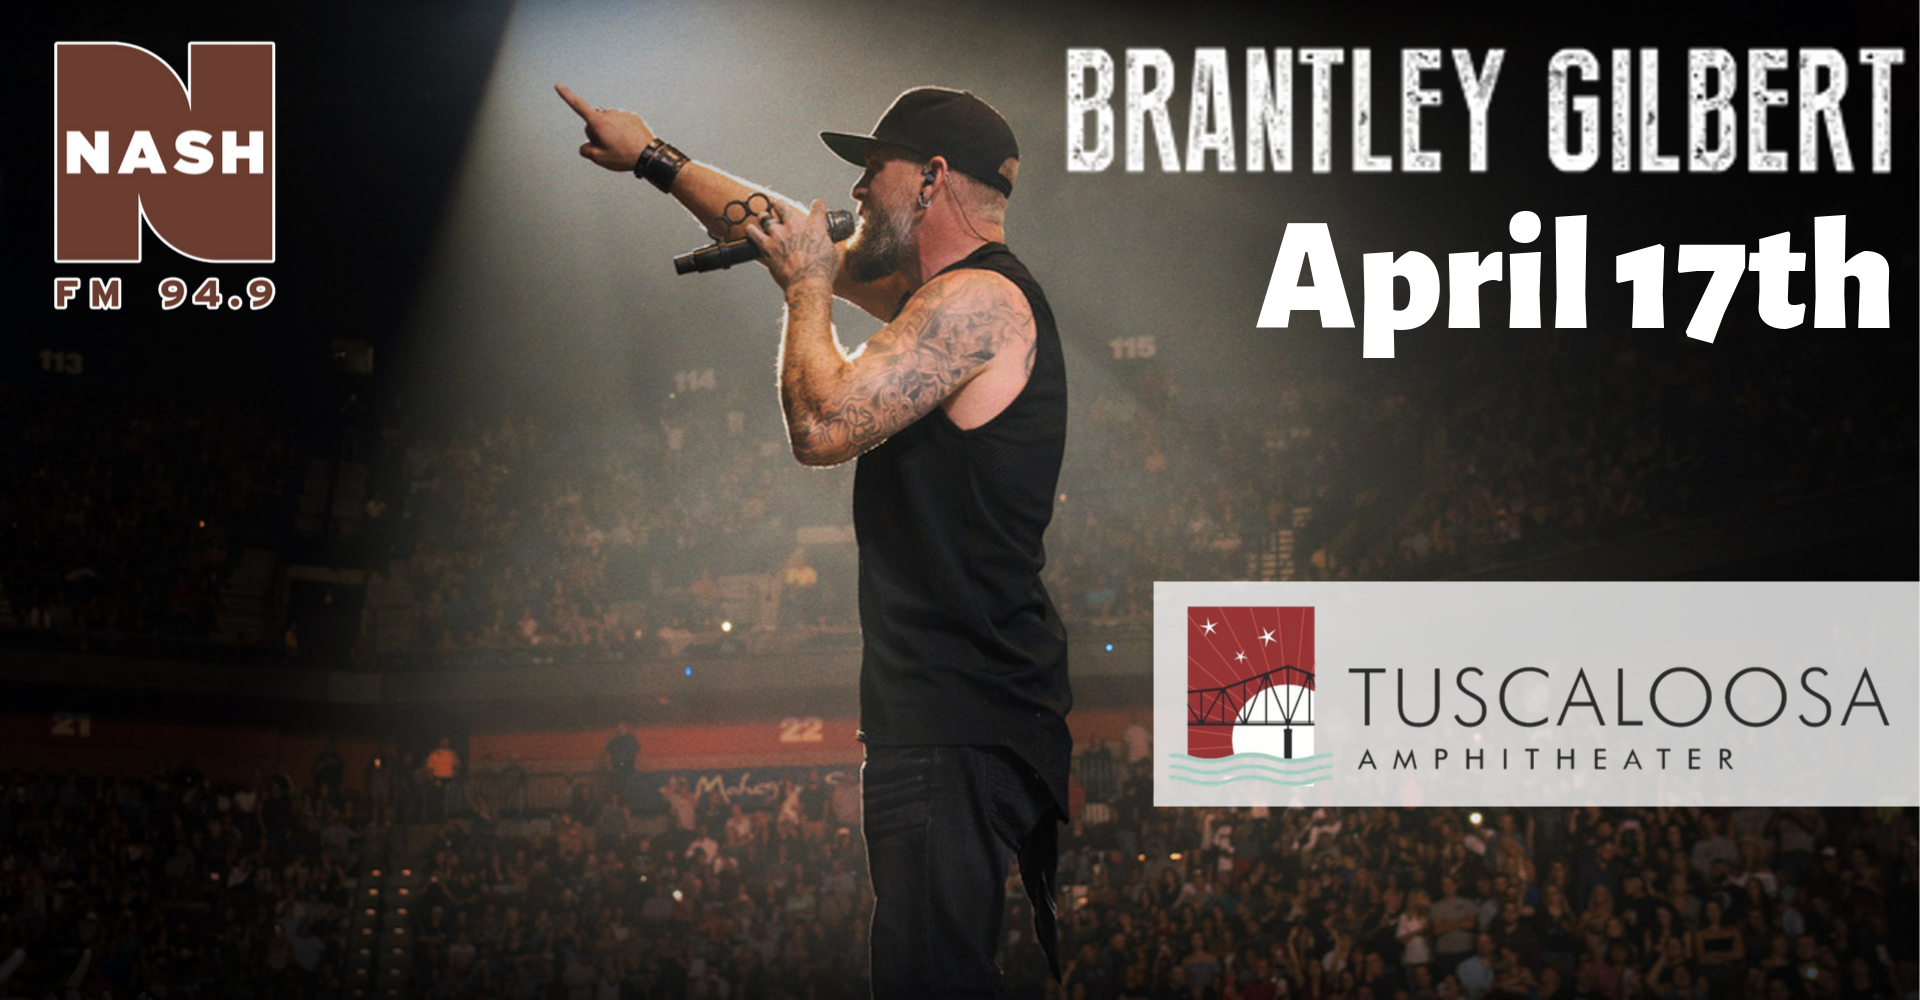 Brantley Gilbert-April 17 at the Tuscaloosa Amphitheater